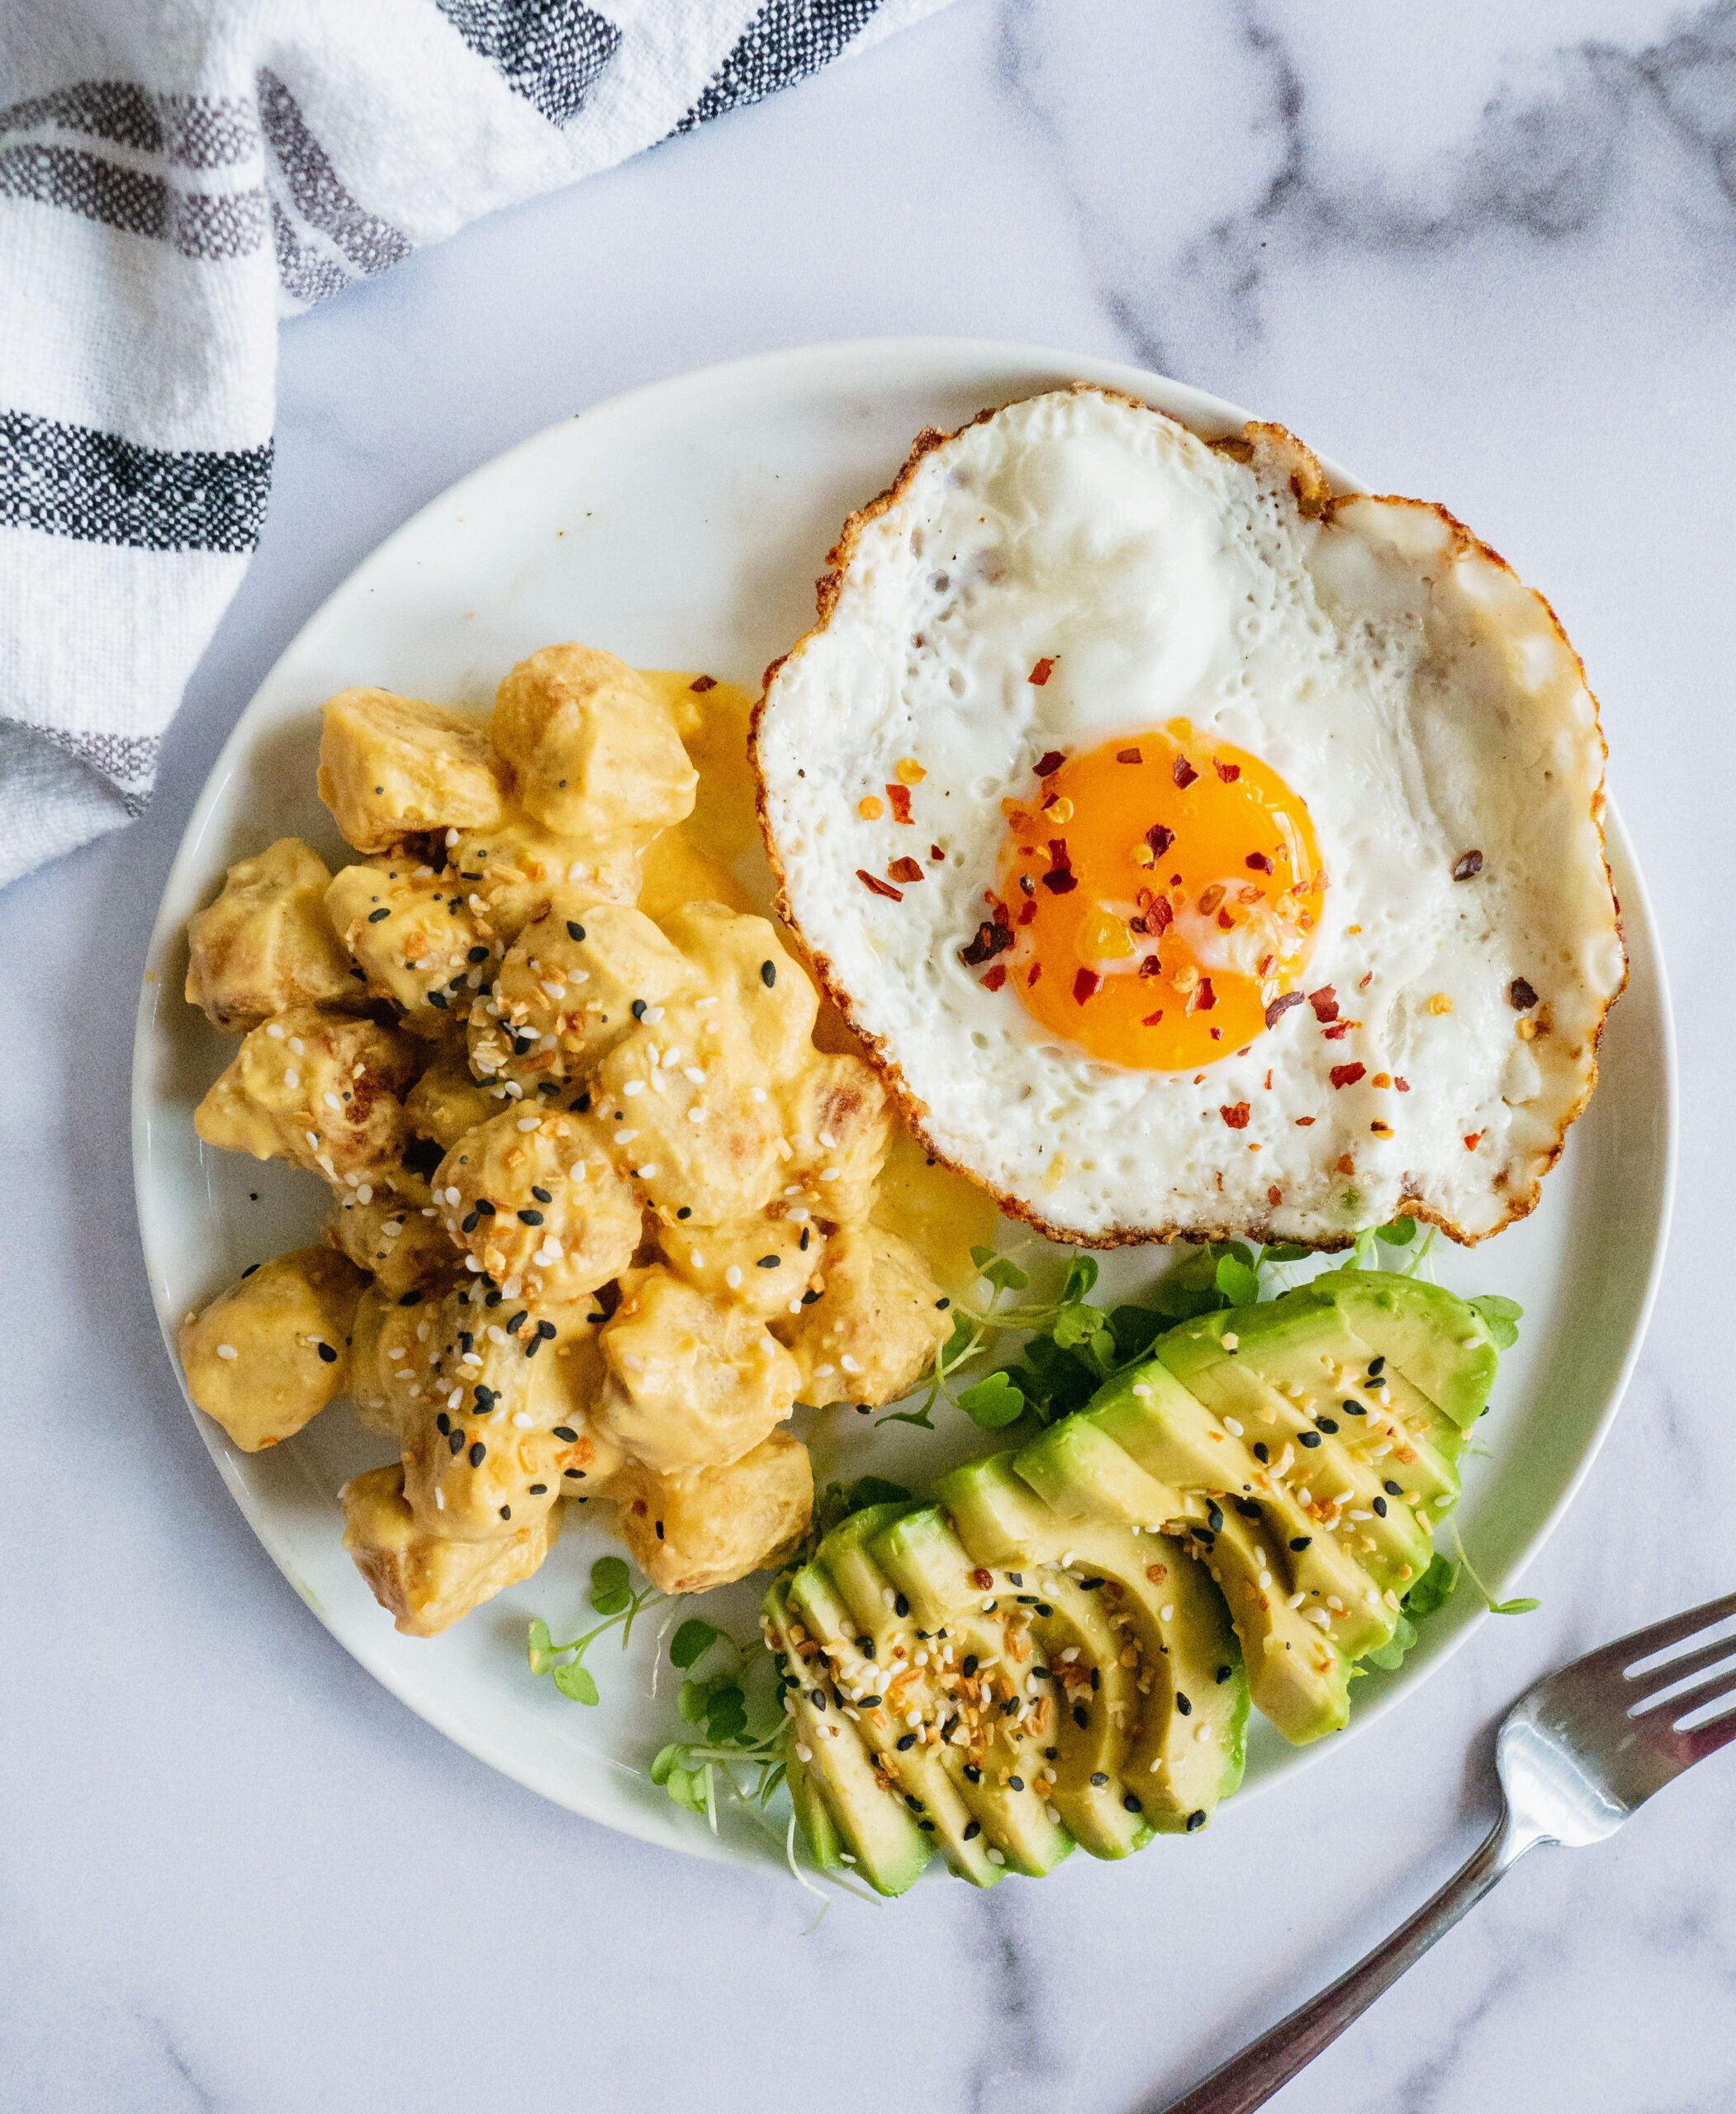 A plate of breakfast food. There is a fried egg with chili flakes, a sliced avocado and vegan cheese sauce